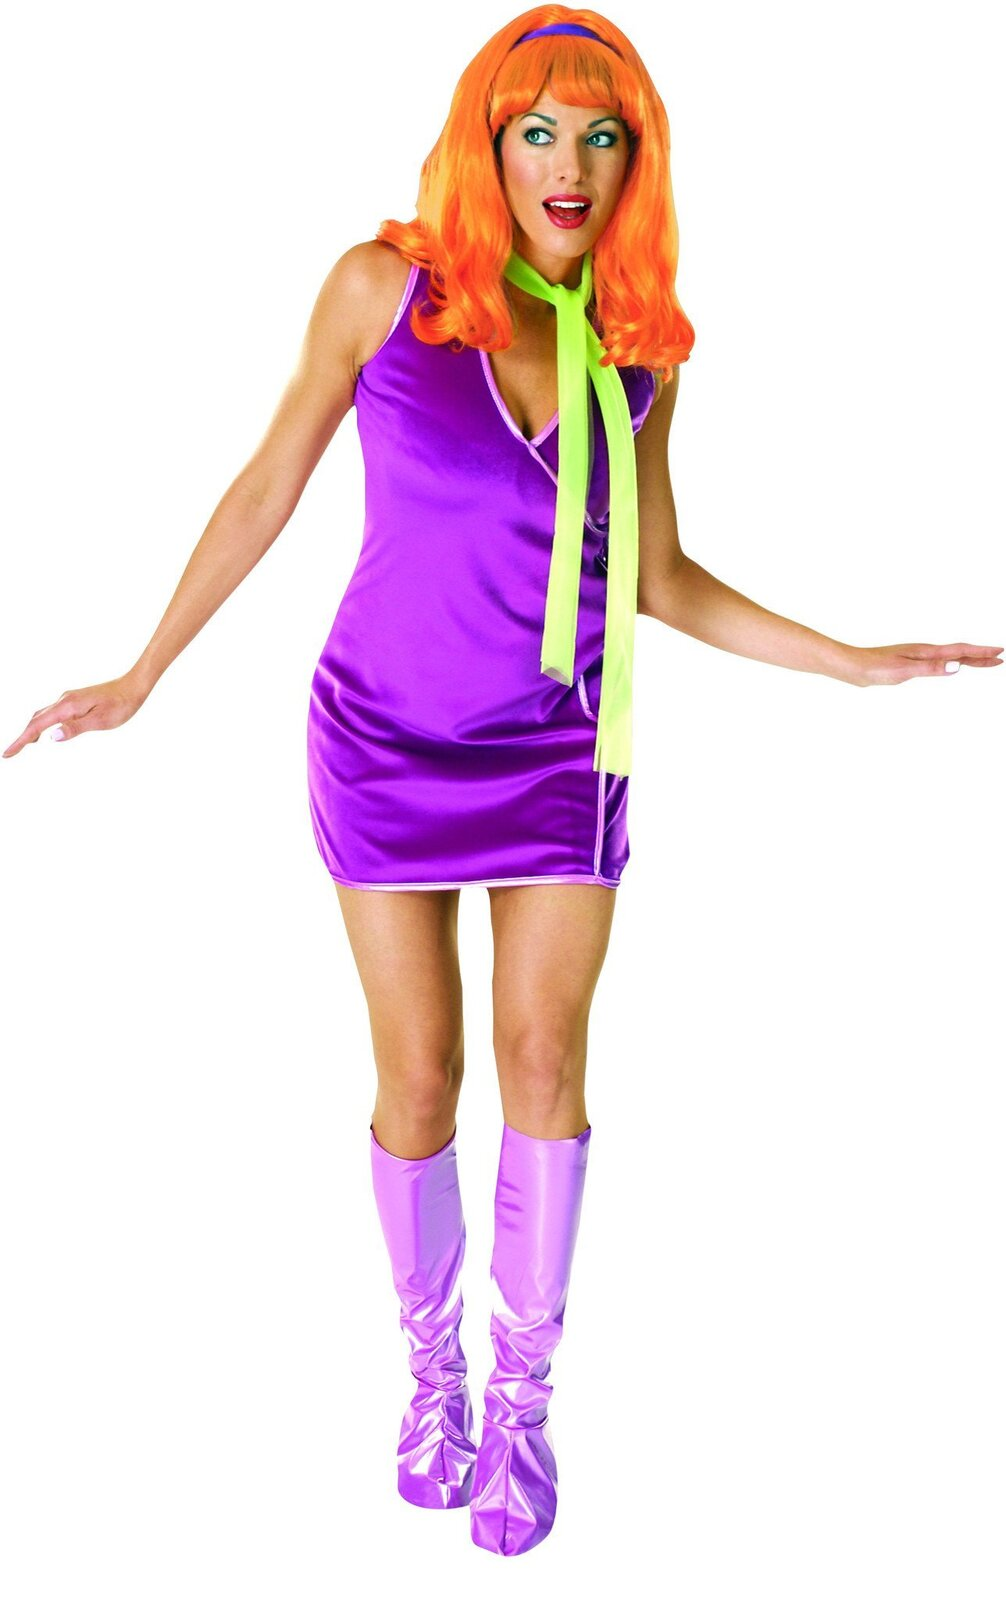 Daphne Deluxe Scooby Doo Costume - Buy Online Only